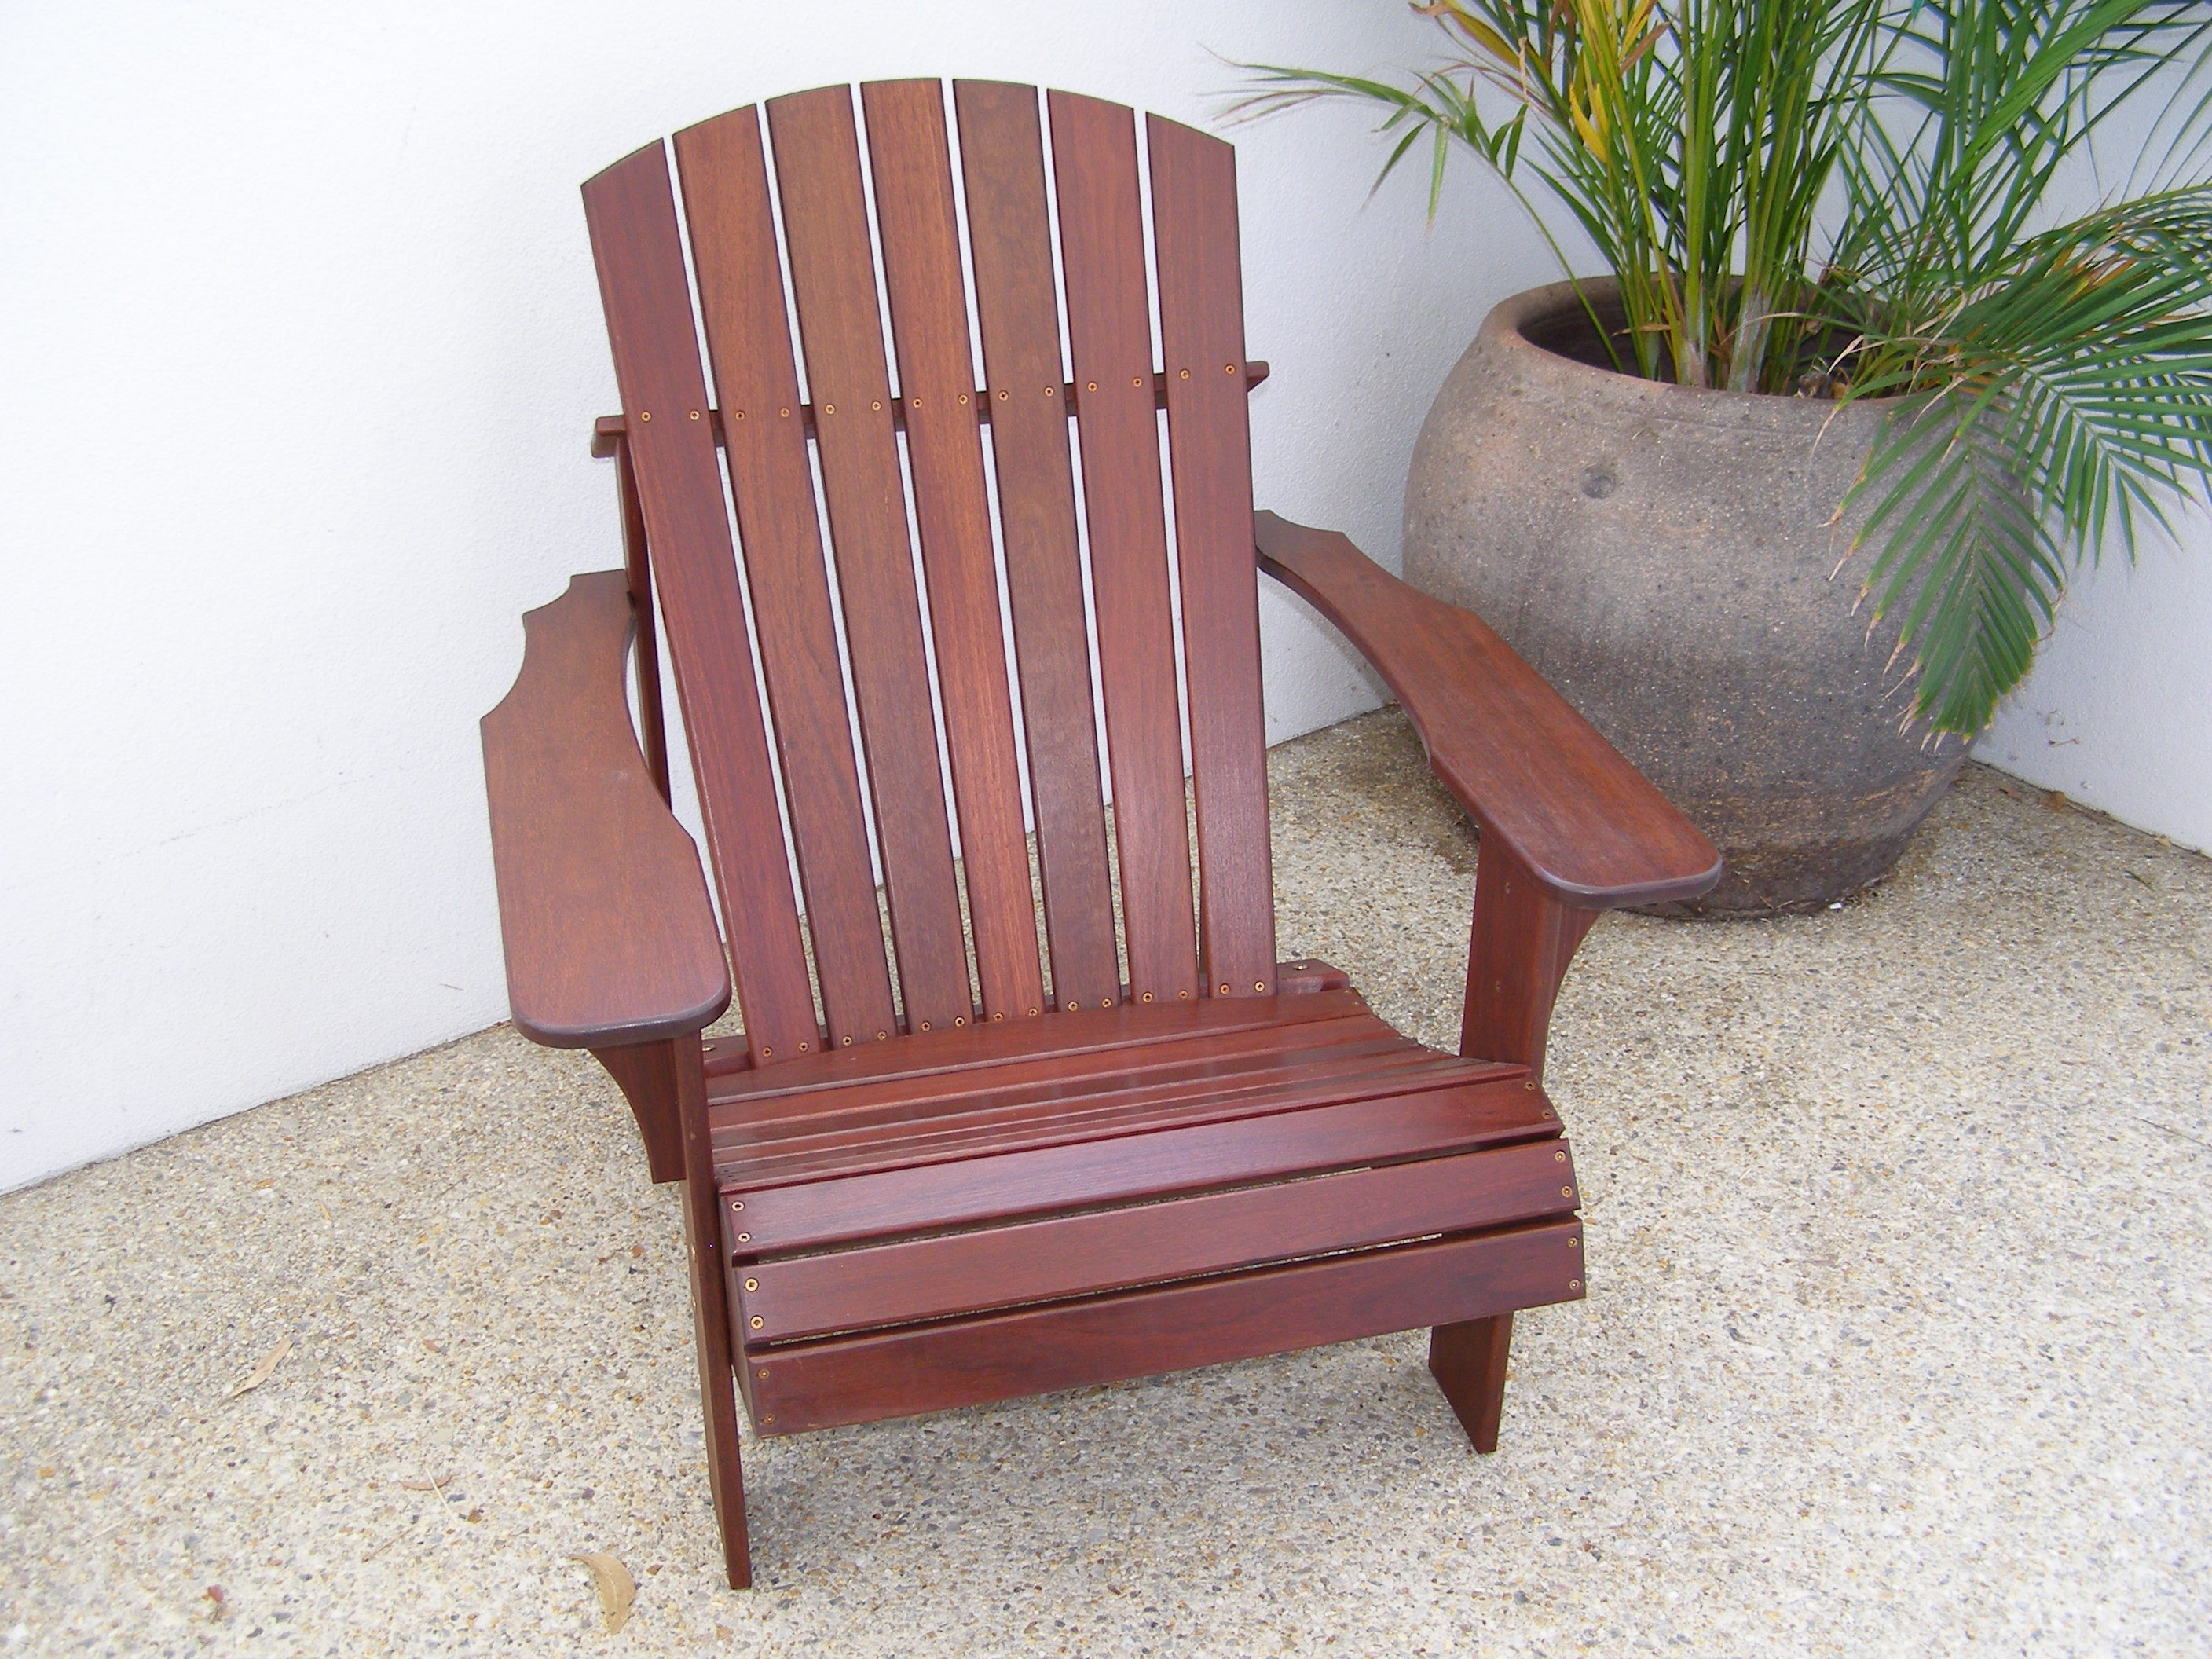 Adirondack / Cape Cod Chair Now In Stock | Easyliving Furniture U0026 Interiors